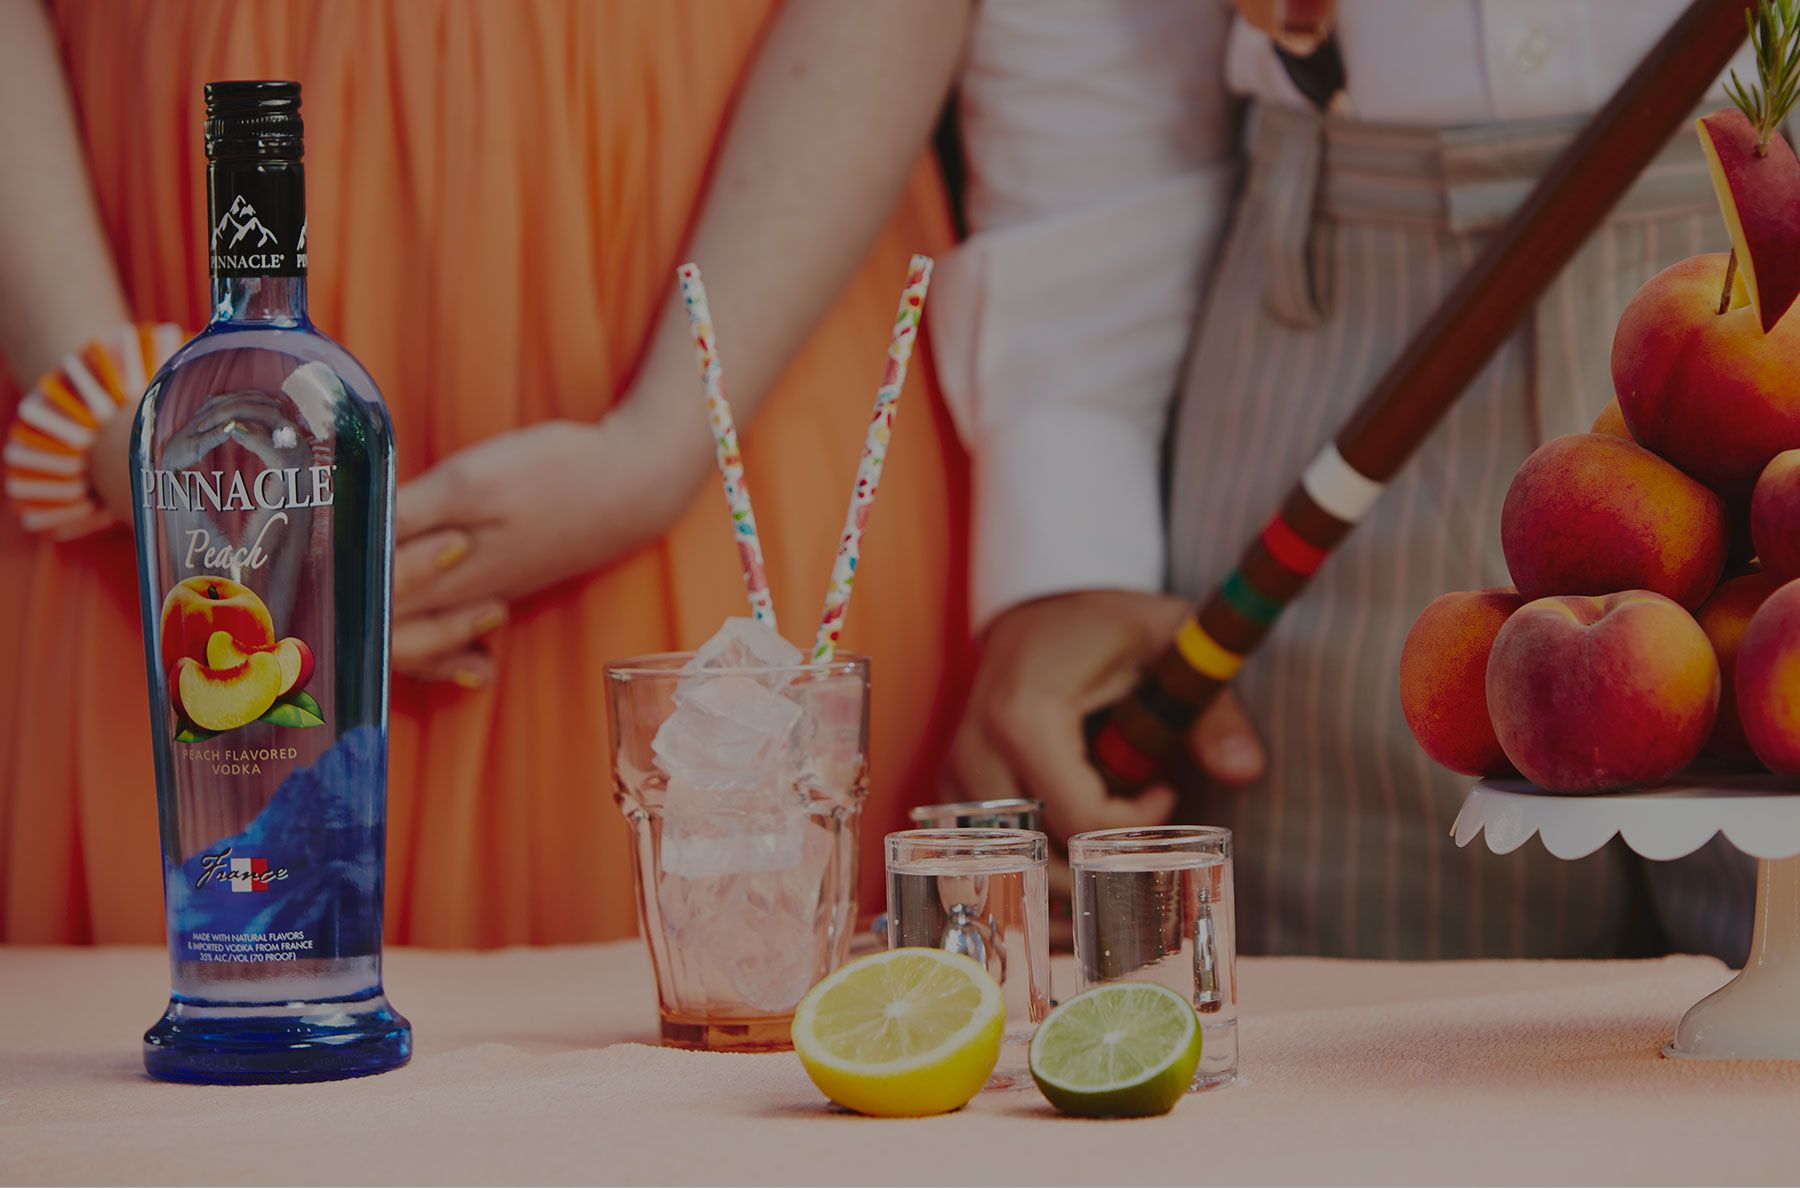 A premium vodka at an affordable price pinnacle vodka boasts more a premium vodka at an affordable price pinnacle vodka boasts more than 40 flavors sisterspd